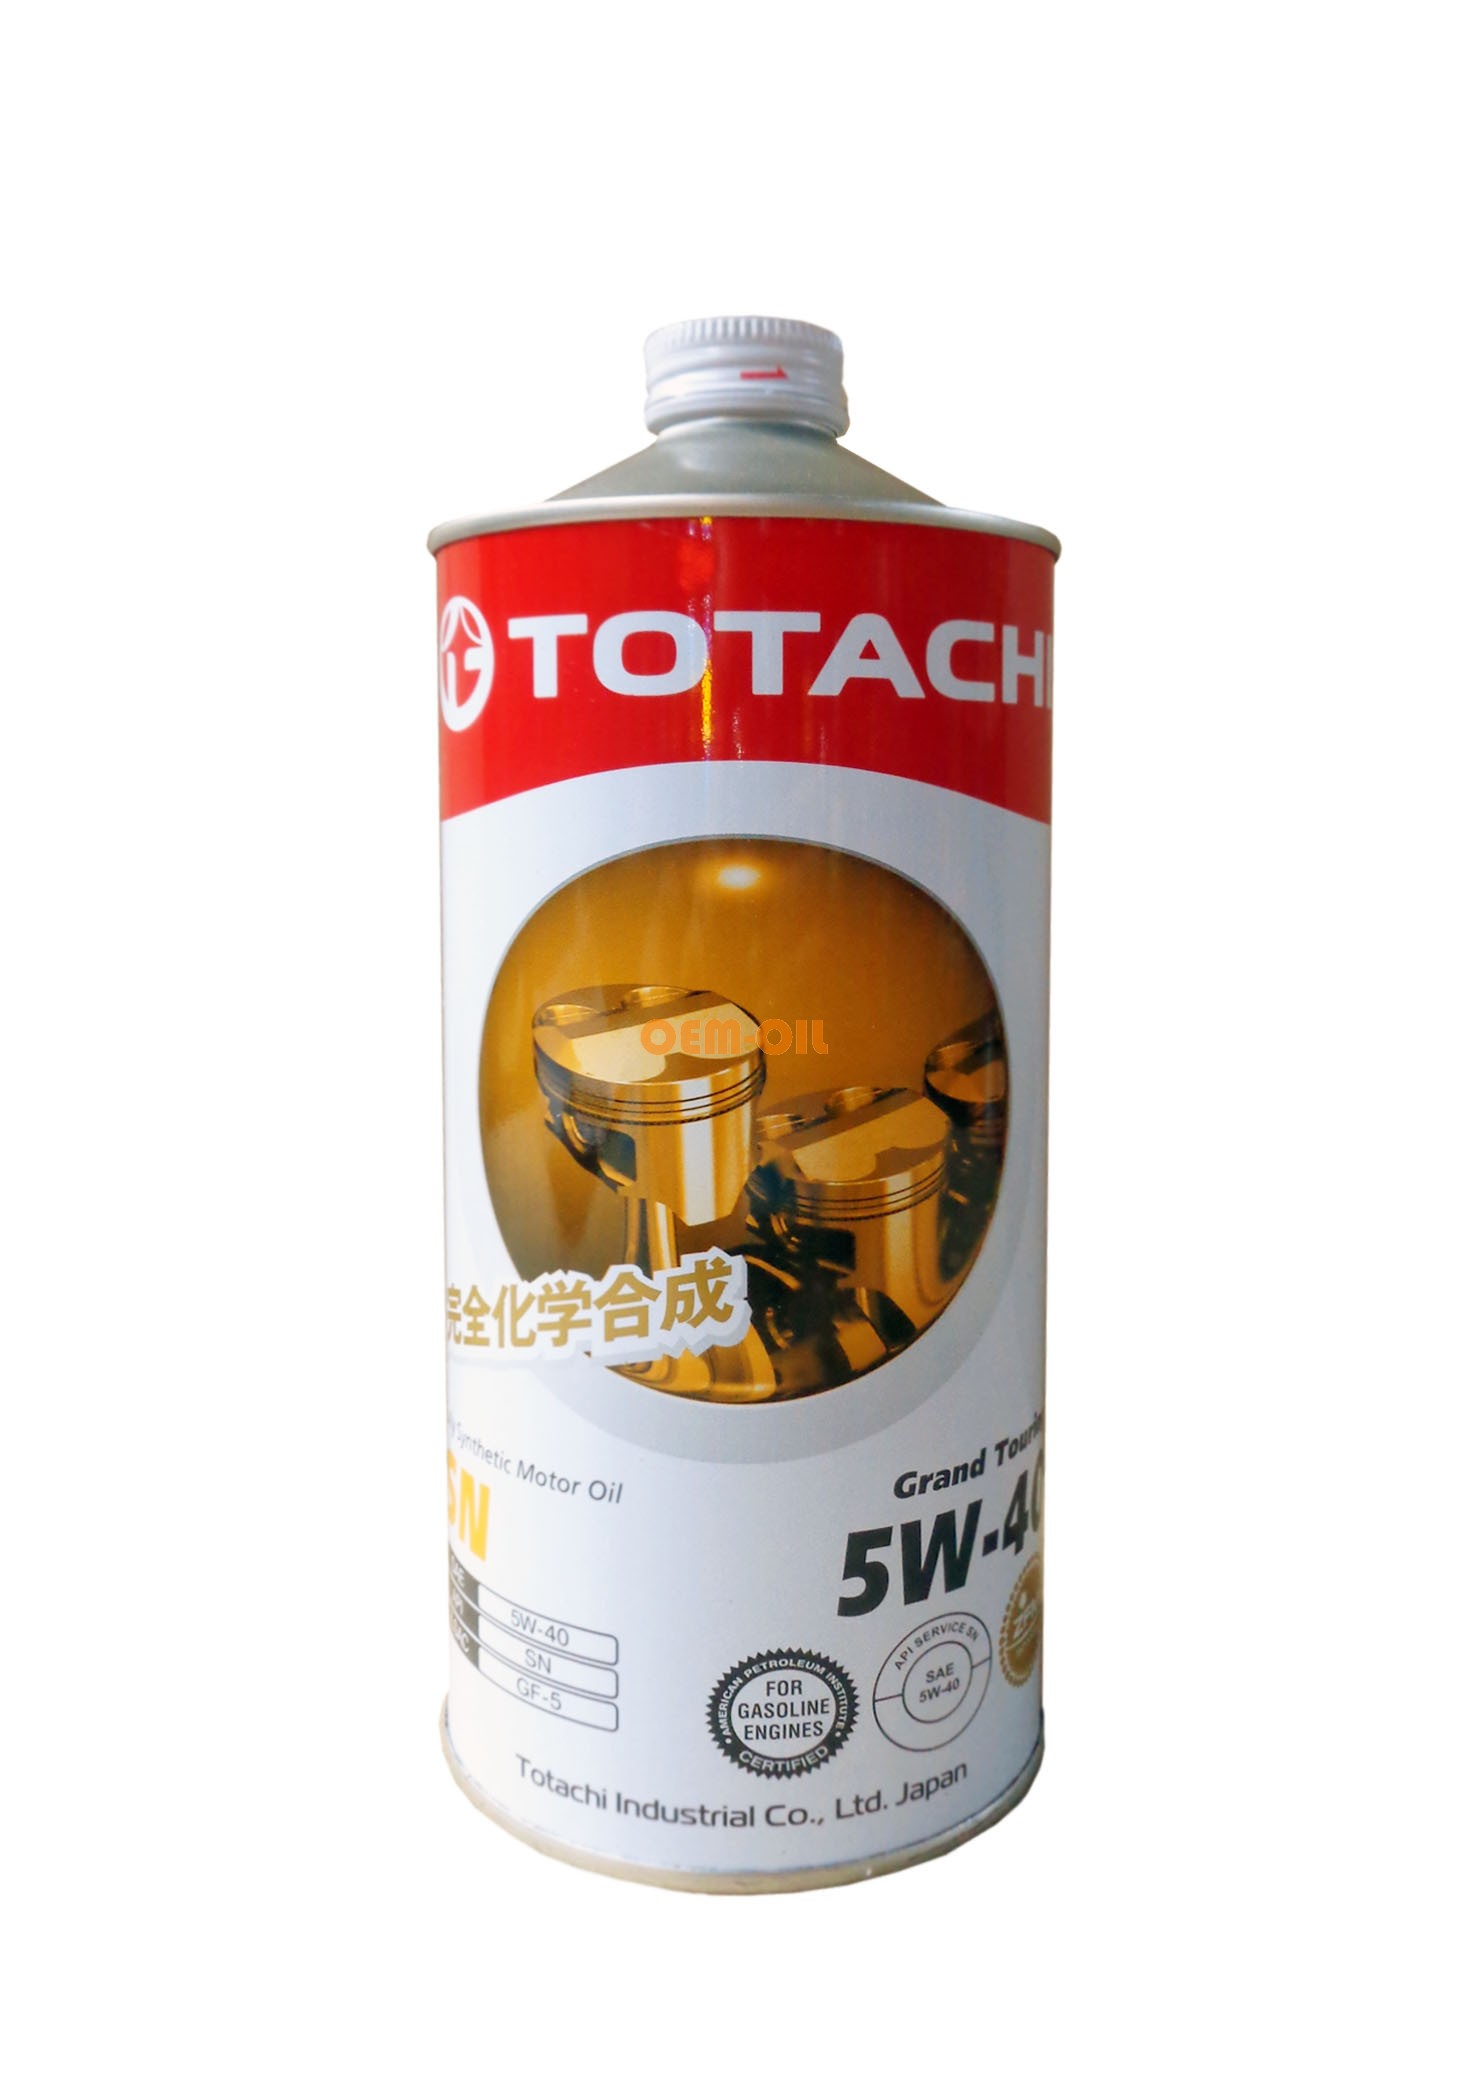 TOTACHI Моторное масло Grand Touring SAE 5w40 1л Full-synthetic